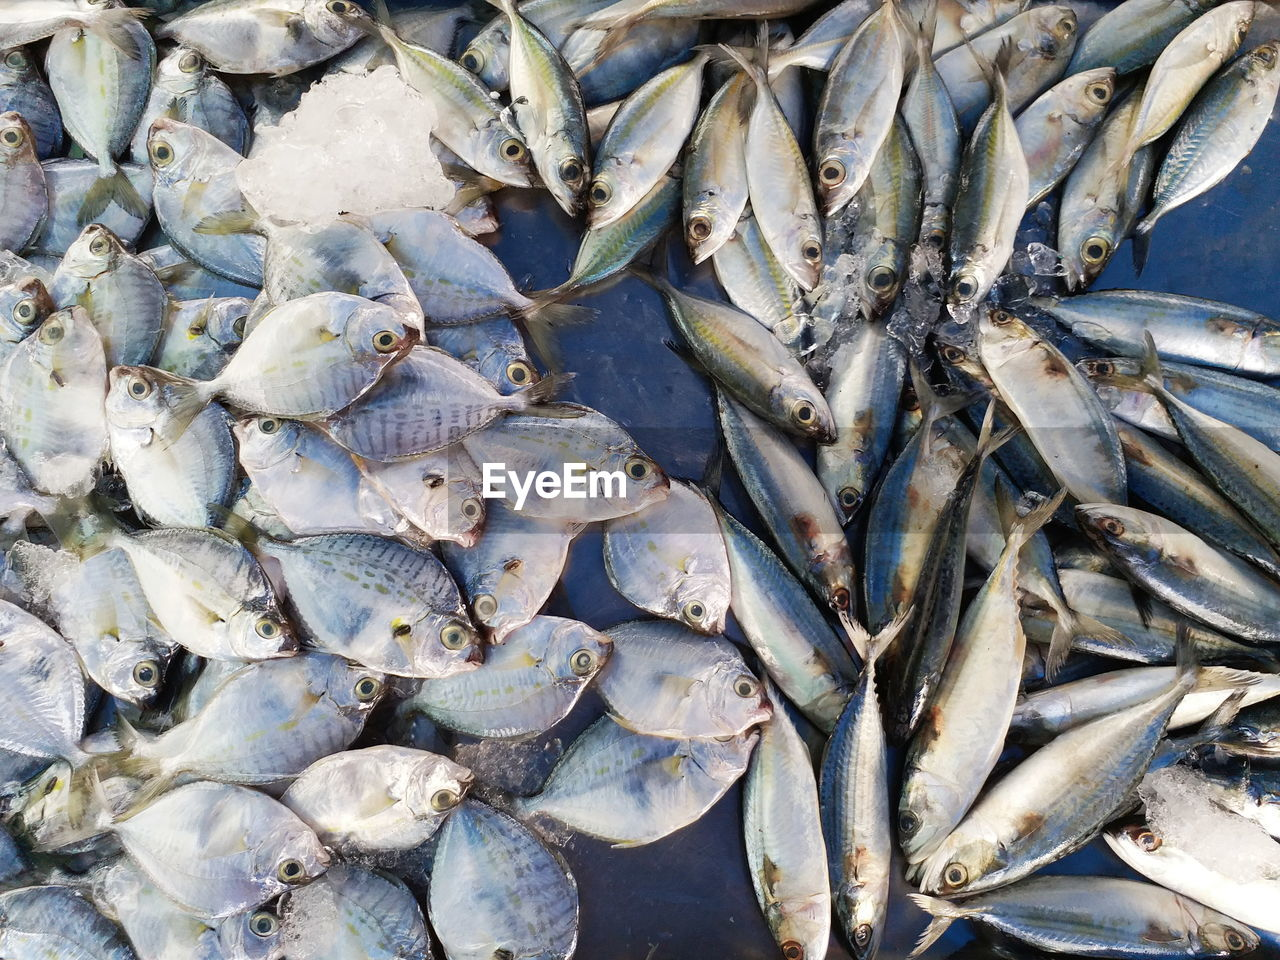 fish, seafood, vertebrate, full frame, freshness, animal, large group of objects, food and drink, no people, food, retail, abundance, for sale, day, market, backgrounds, high angle view, raw food, healthy eating, fishing industry, outdoors, fish market, marine